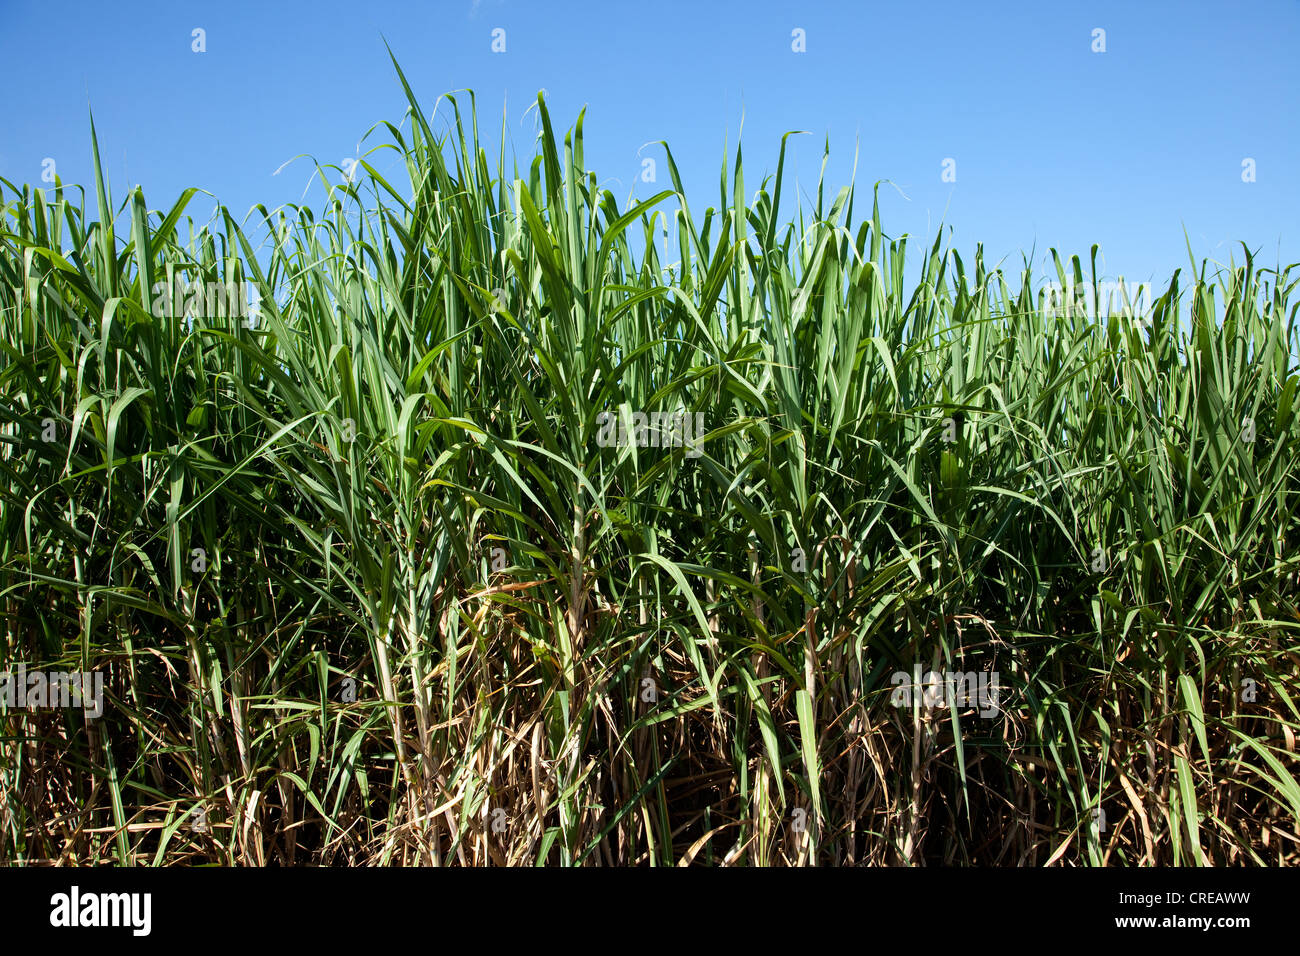 Sugar cane field near Saint-Pierre, La Reunion island, Indian Ocean - Stock Image